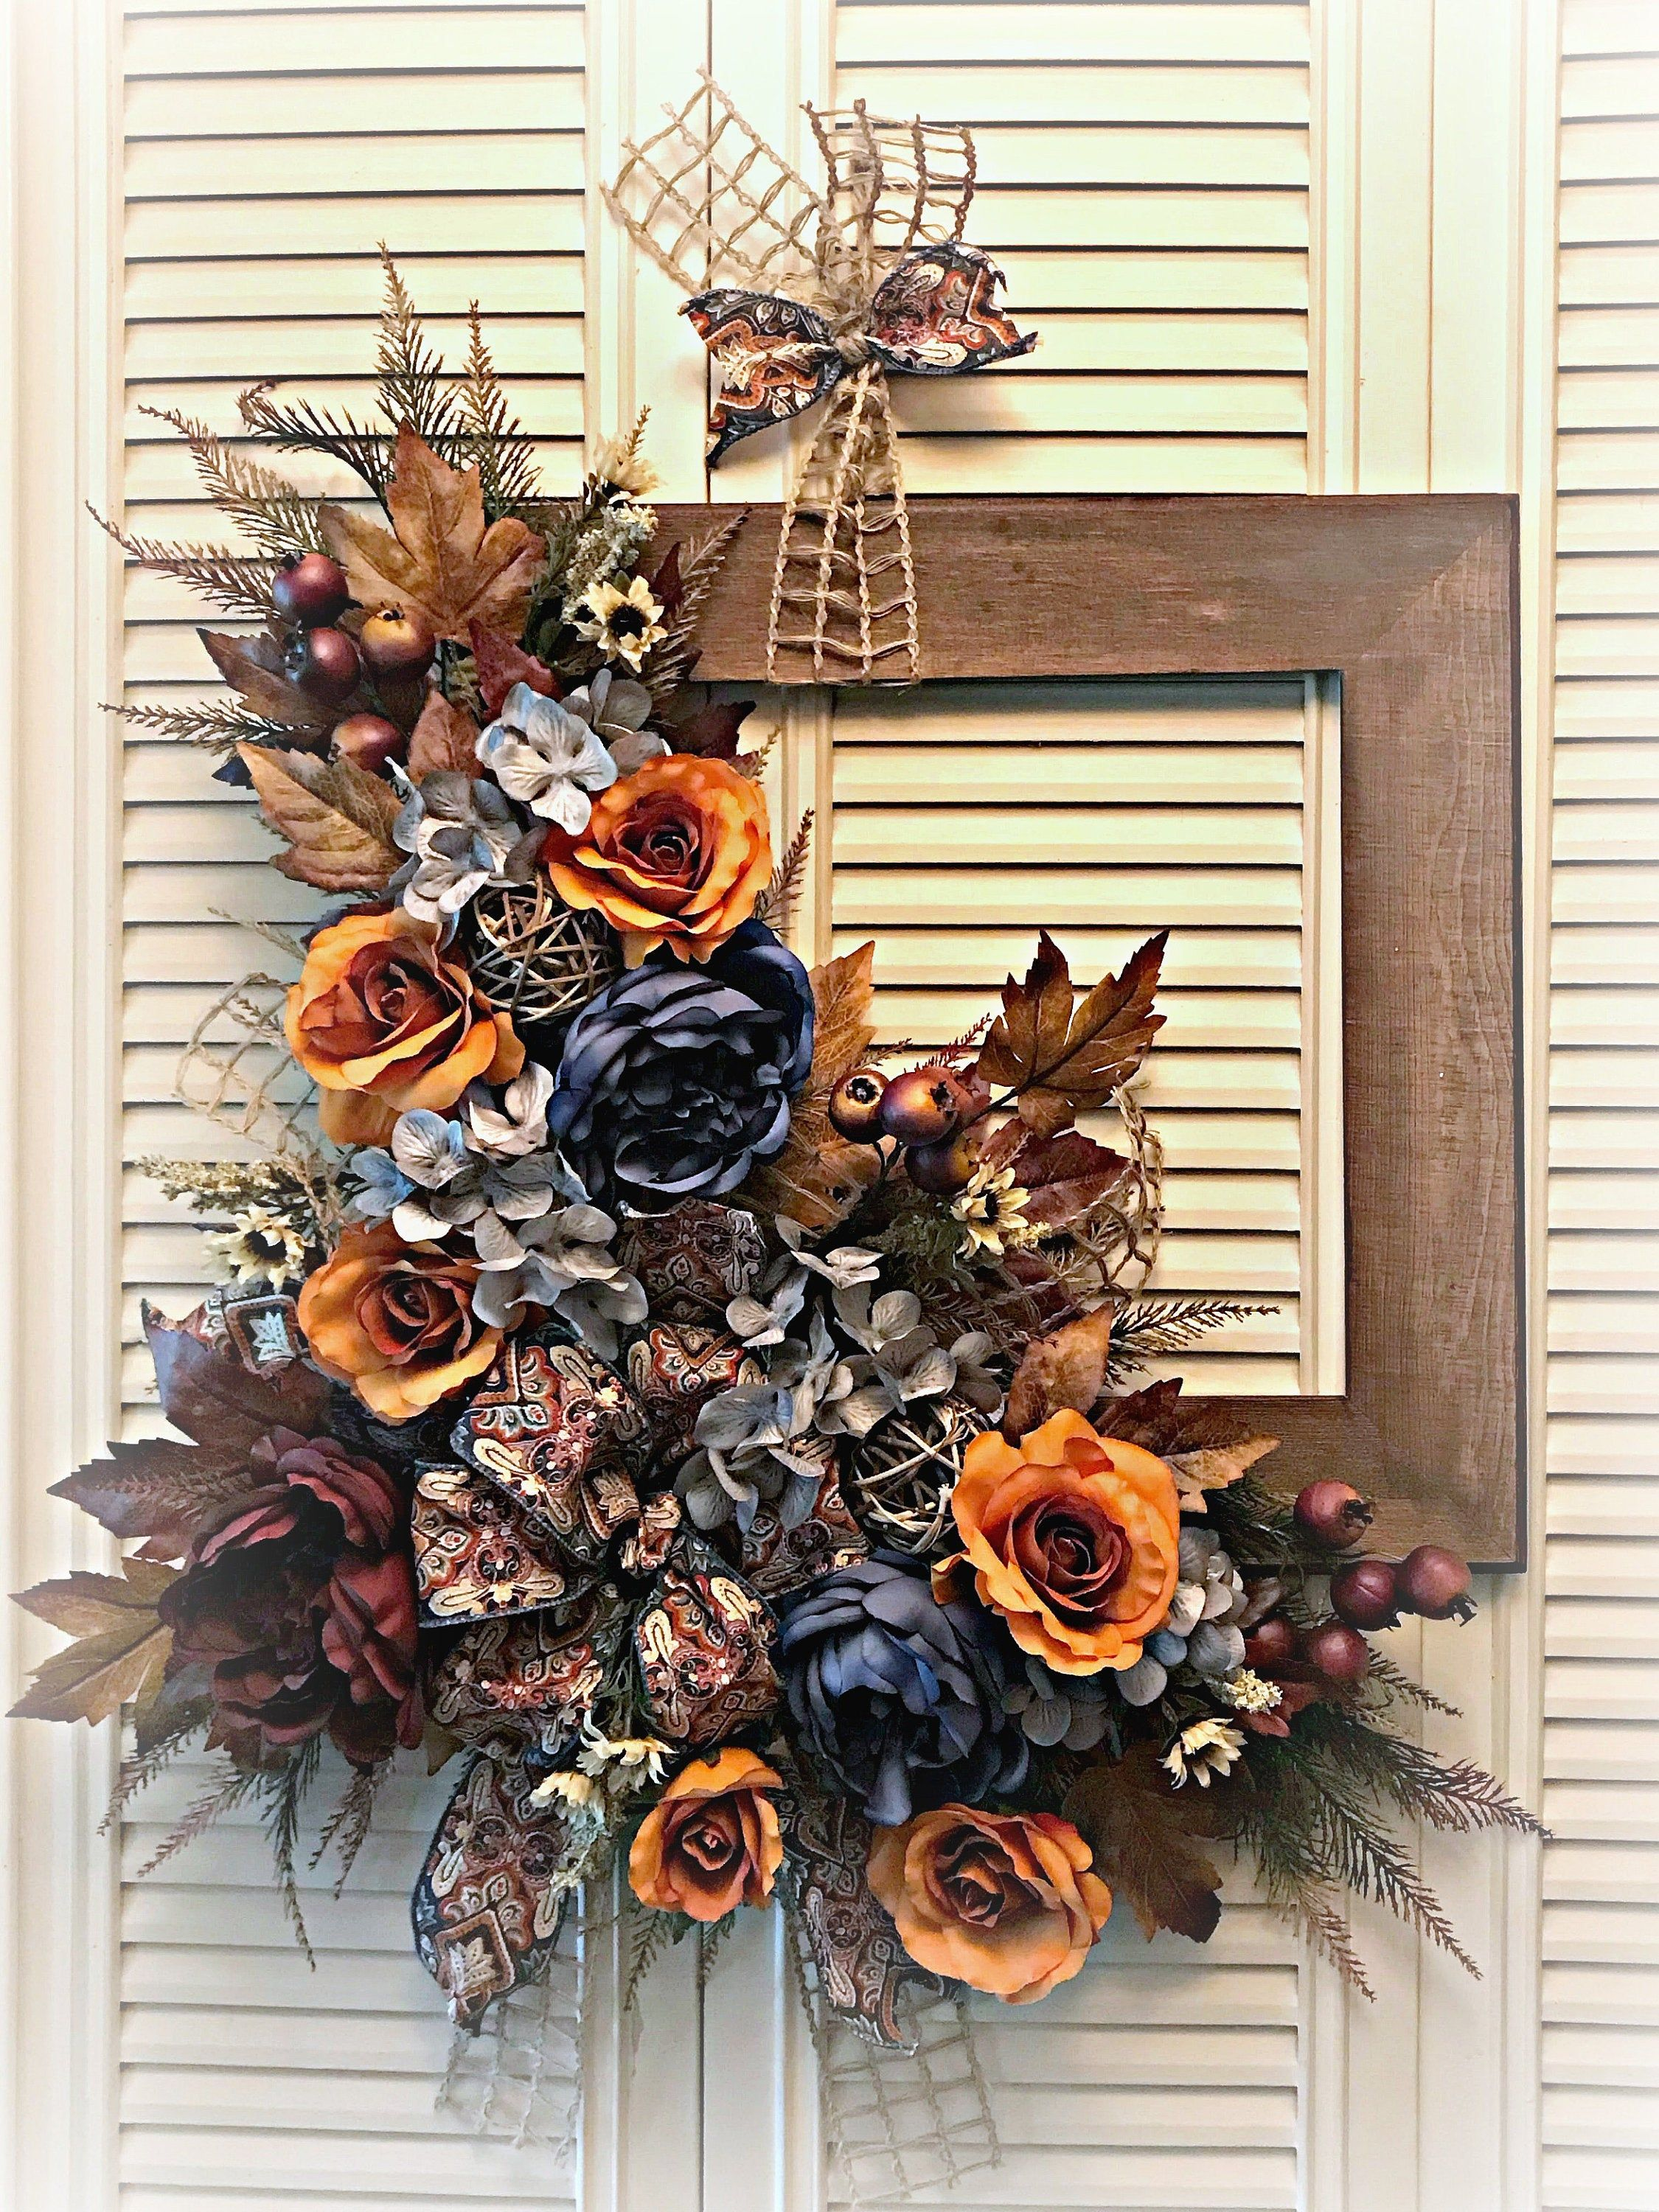 Fall Frame Wreath Early Fall Wreath Rustic Autumn Door Hanger Late Summer Wreath Fall Door Decoration H Fall Door Decorations Fall Wall Decor Frame Wreath